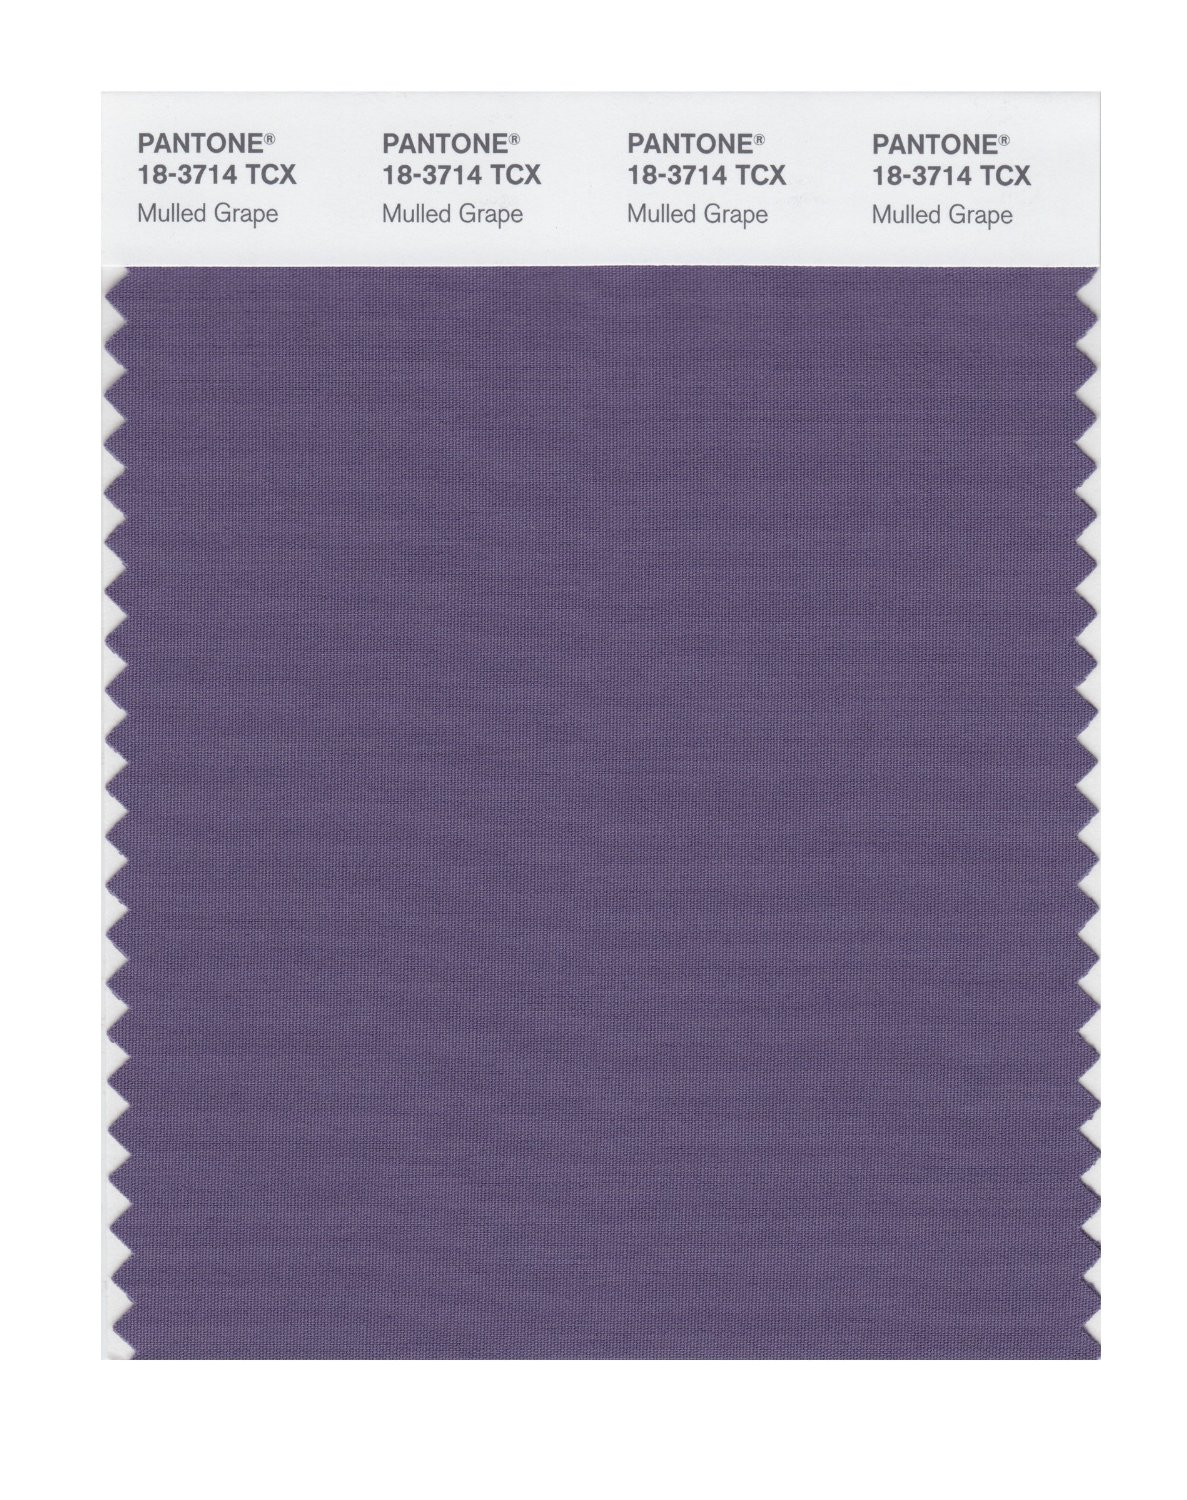 Pantone Smart Swatch 18-3714 Mulled Grape